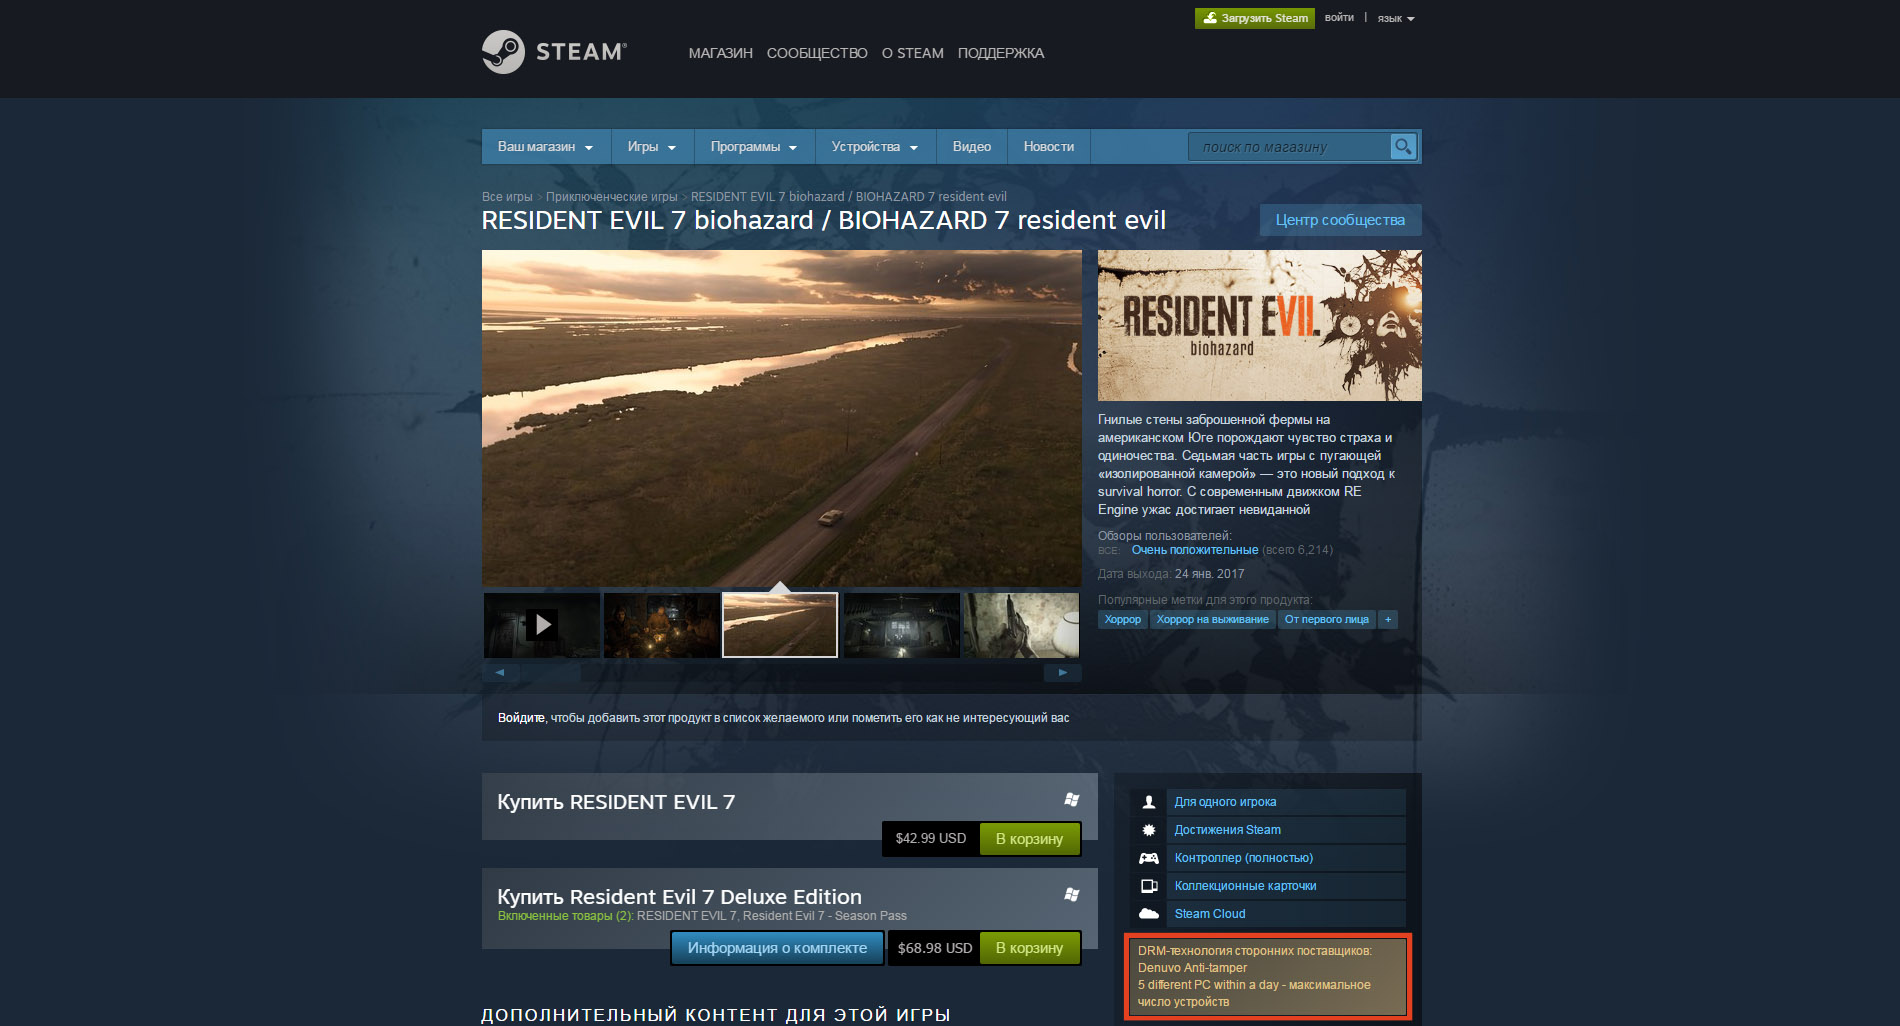 Resident Evil 7 steam price